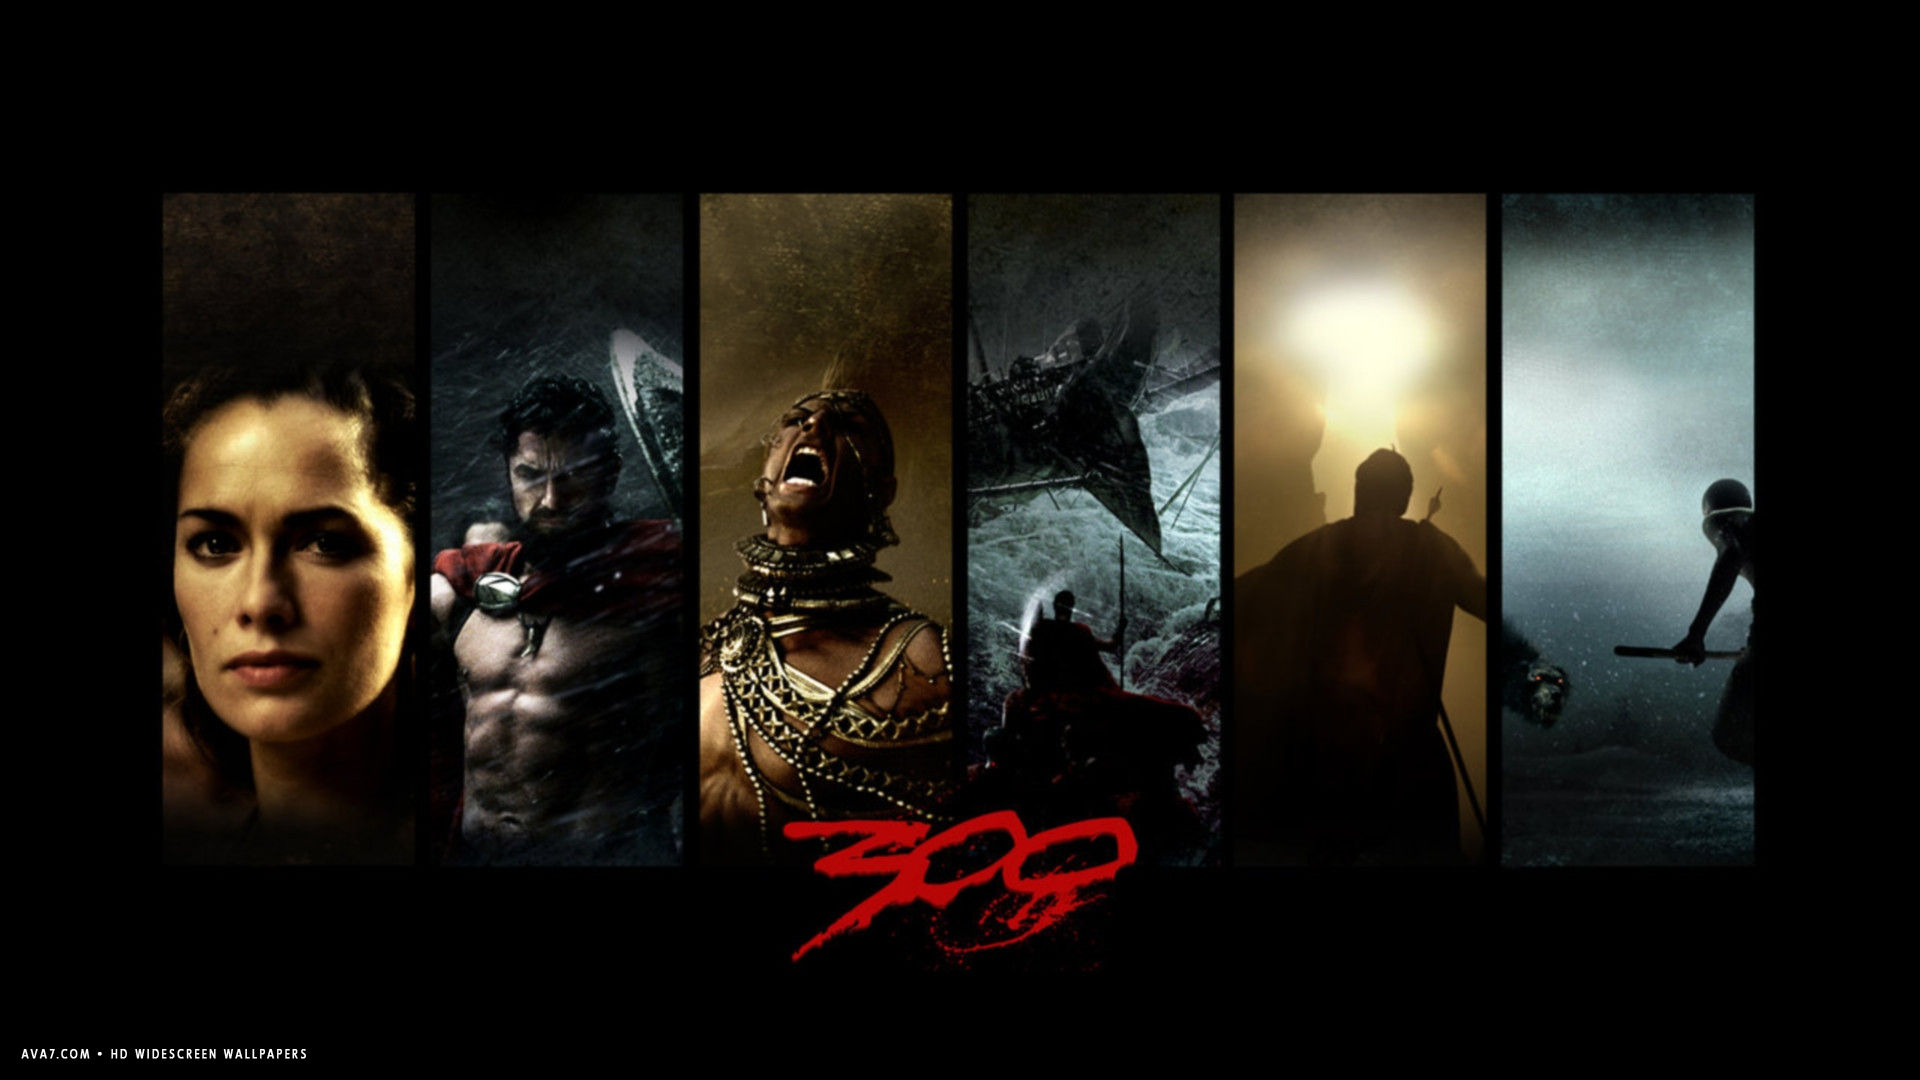 300 Movie Hd Widescreen Wallpaper Movies Backgrounds